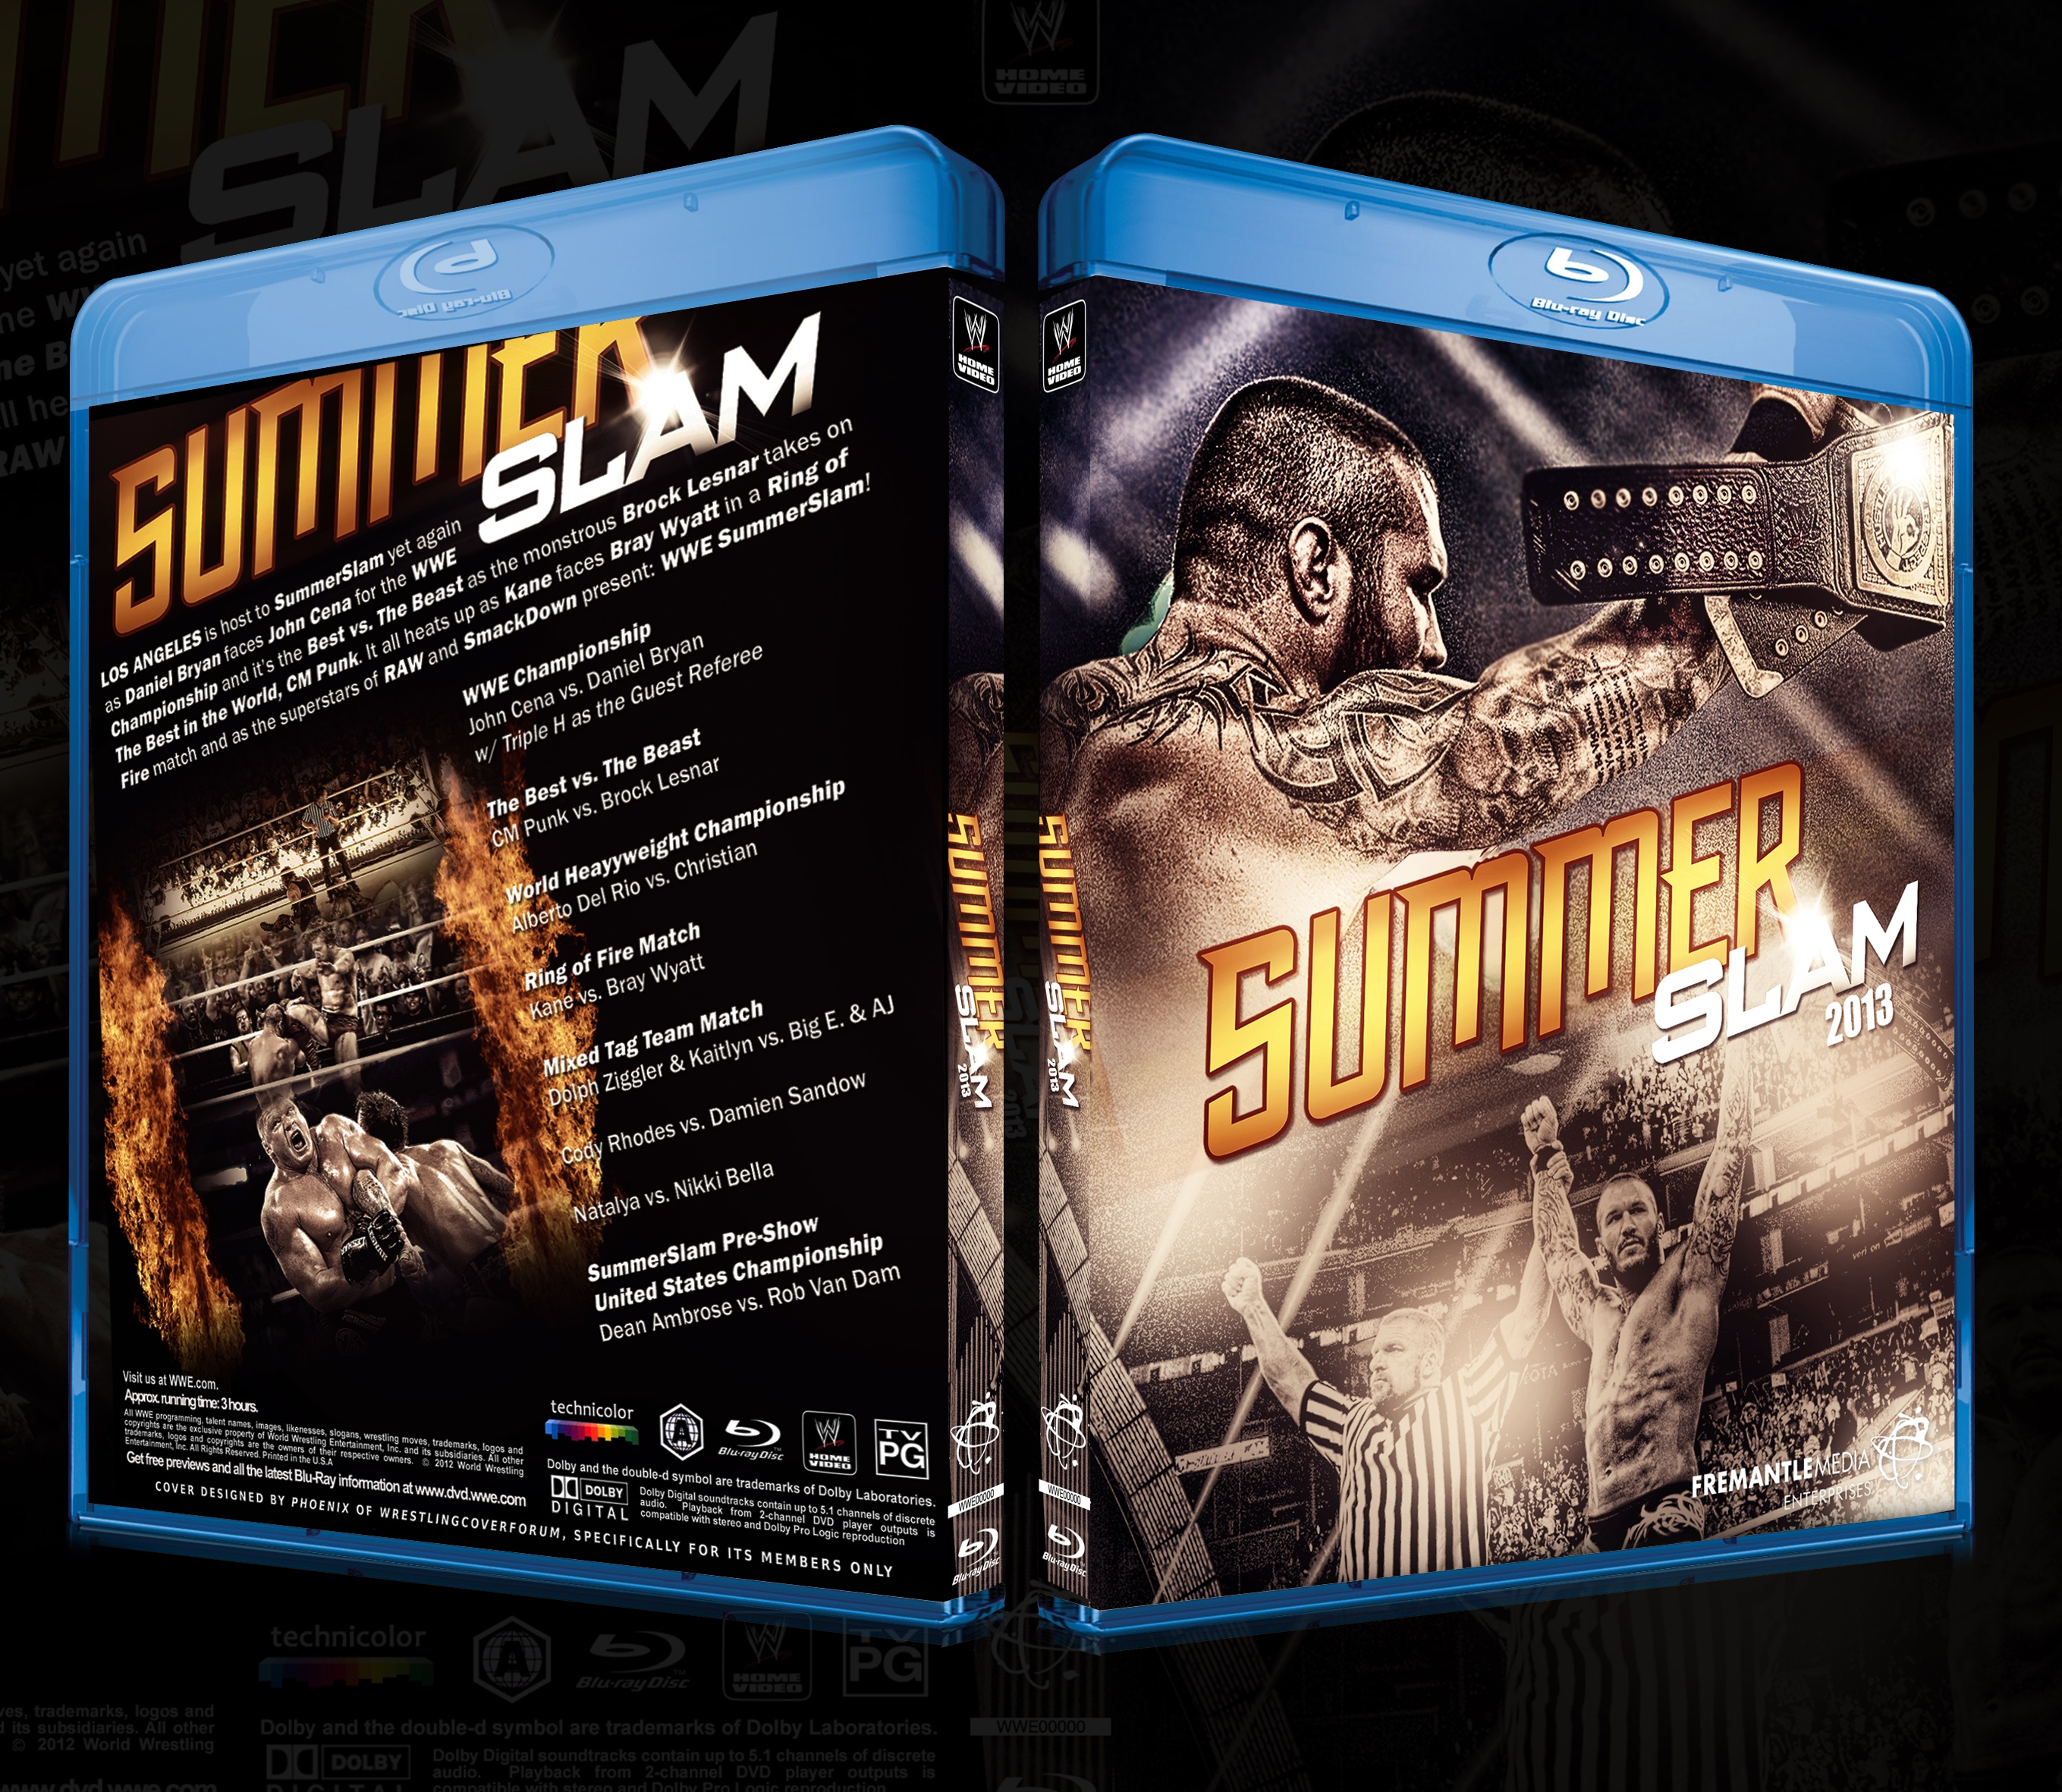 Viewing full size WWE - SummerSlam 2013 box cover by BenBrownDesign